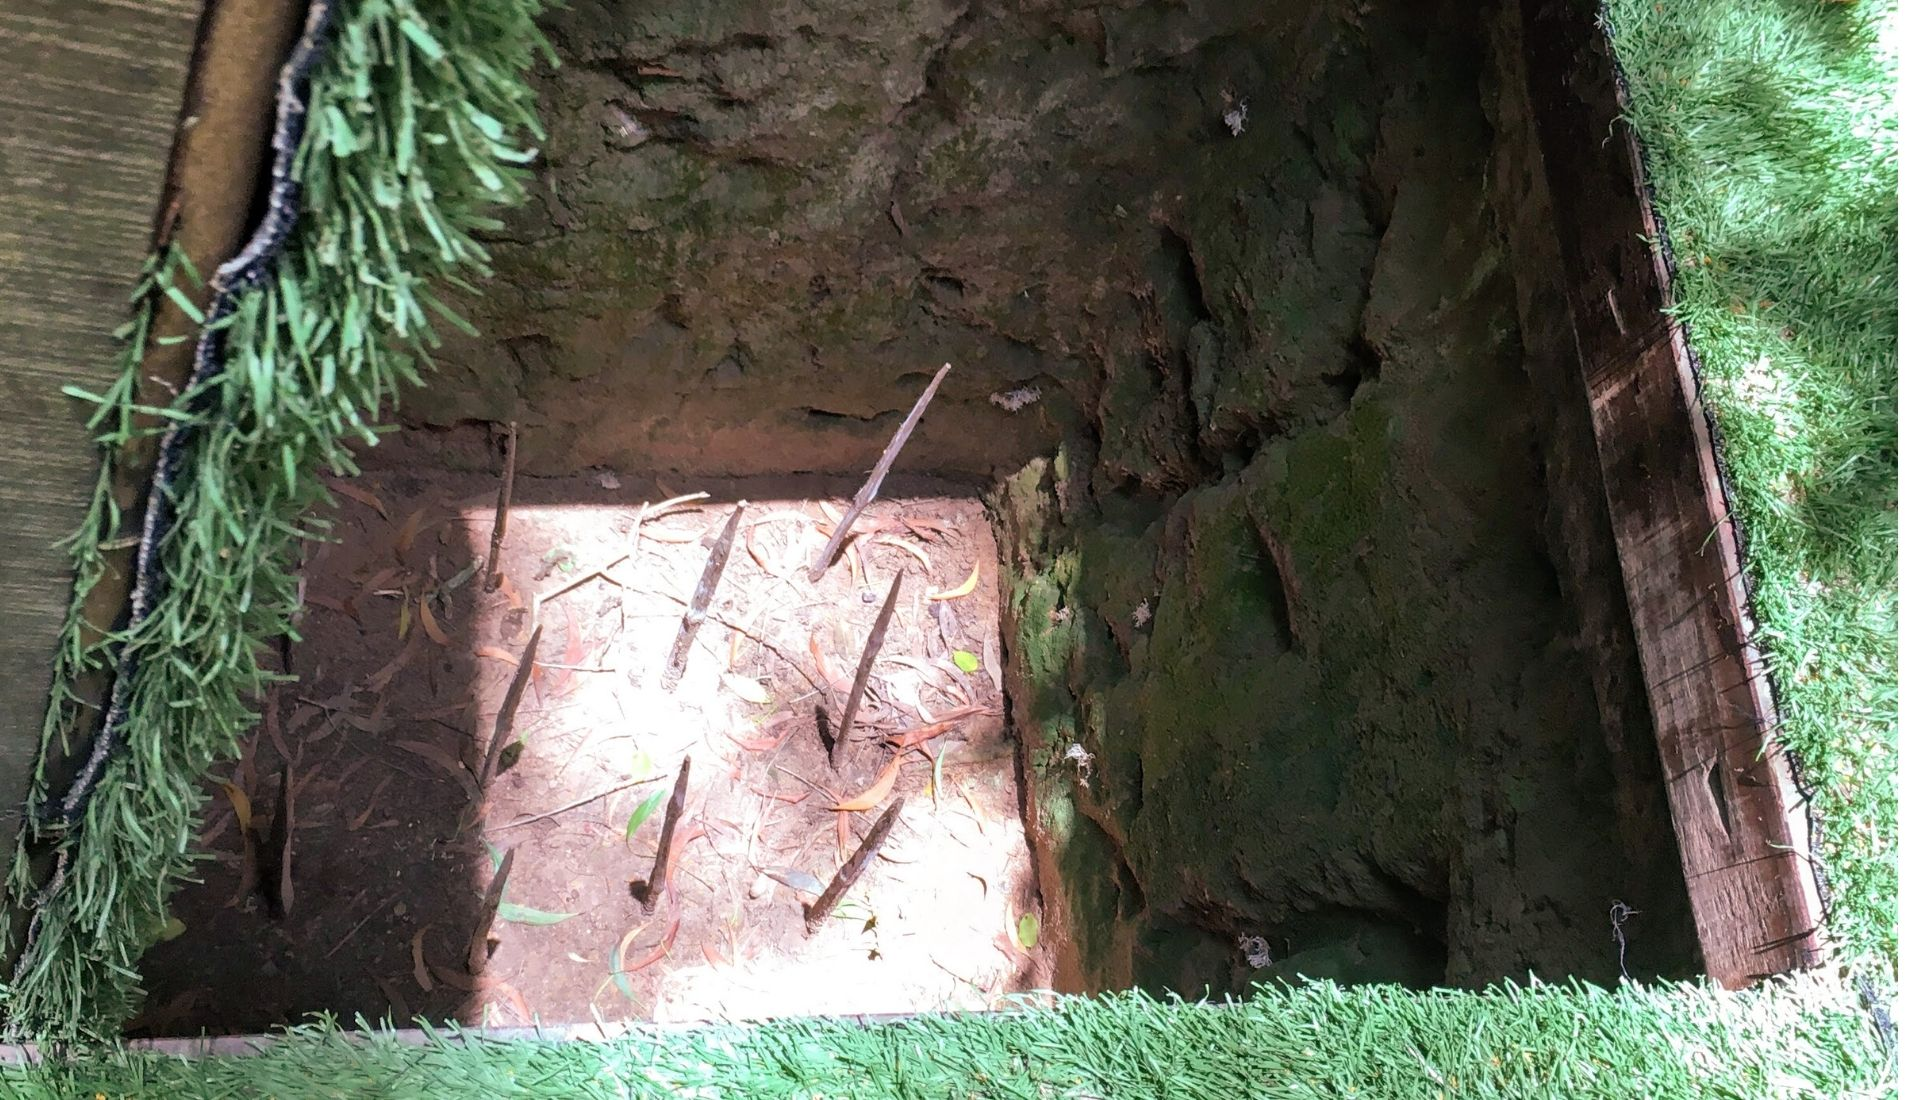 Many traps scattered throughout.